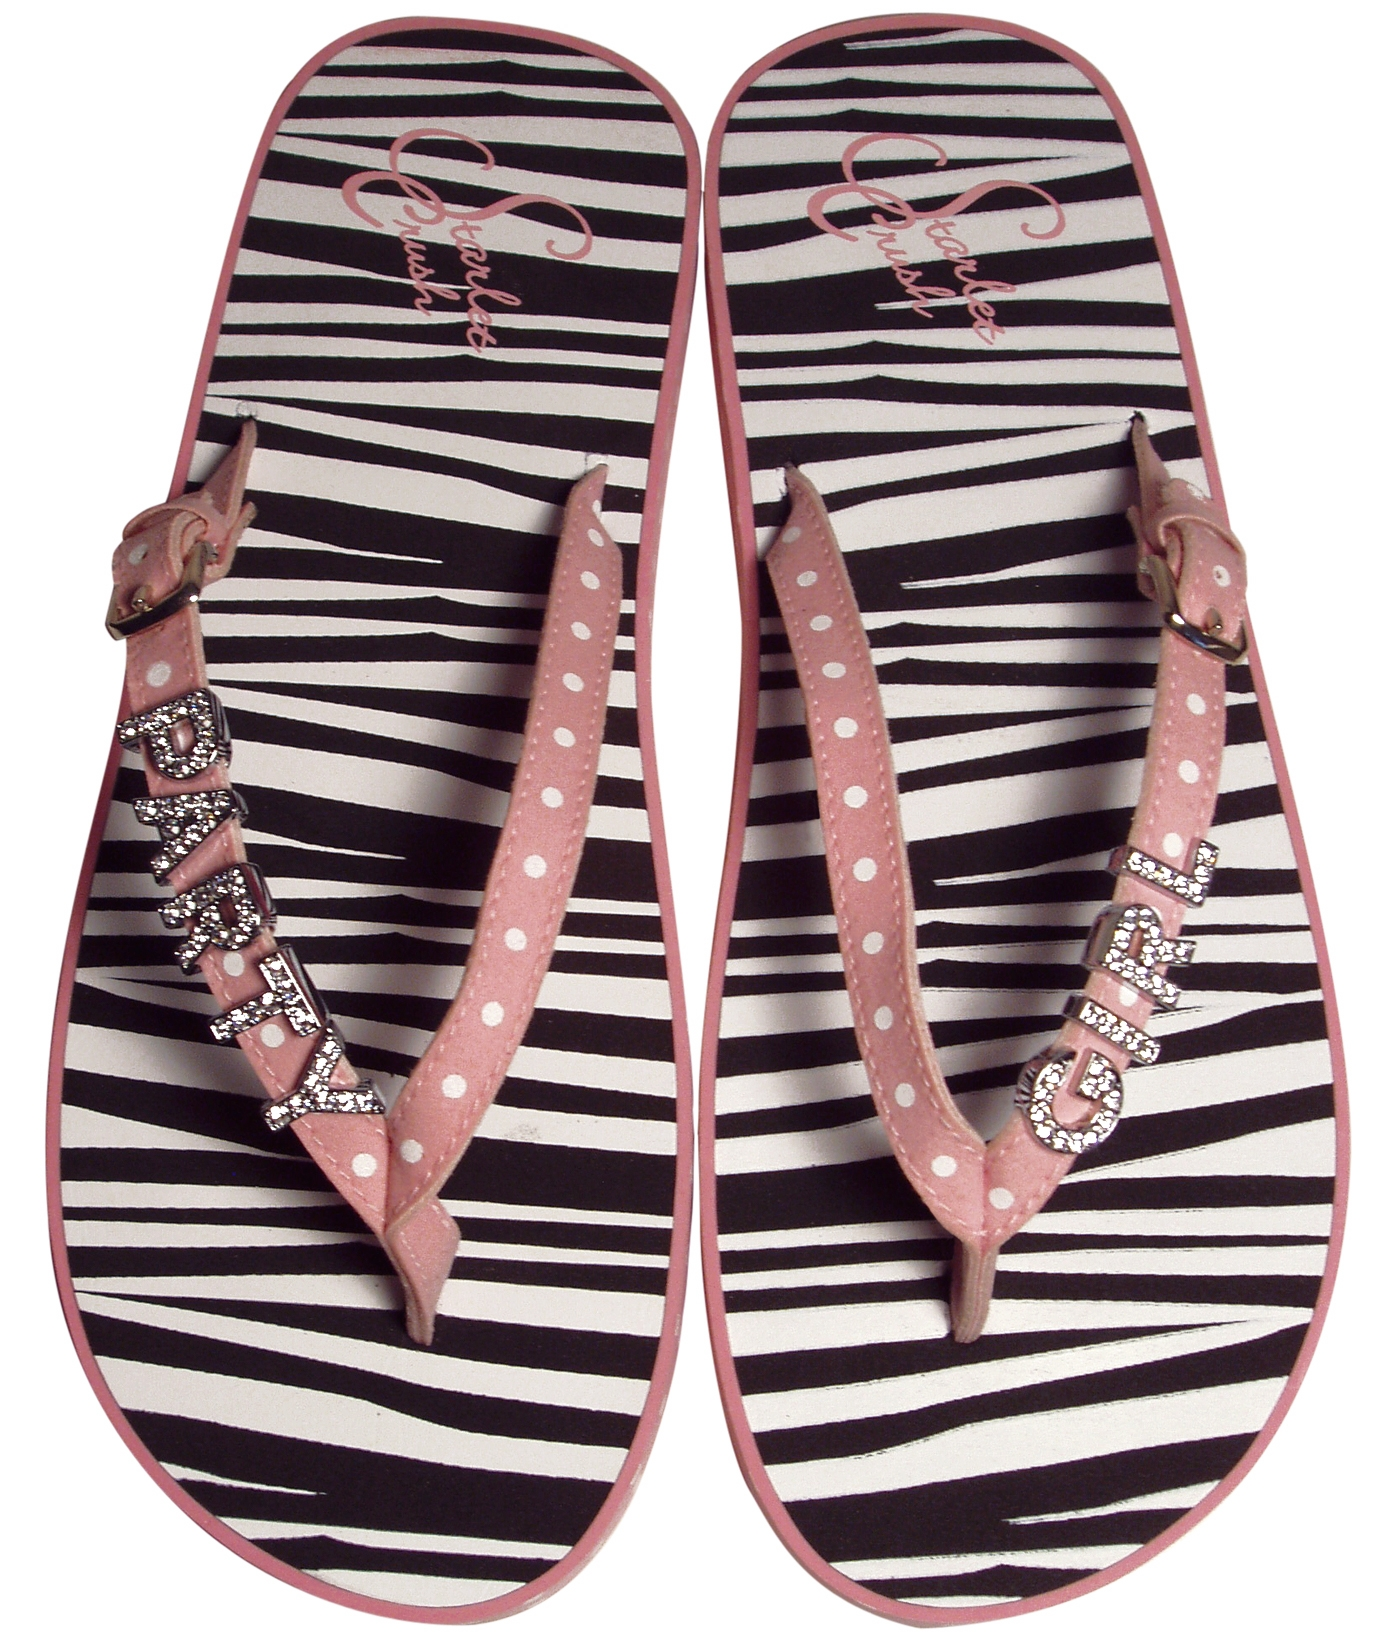 8cc74c07dcaa1b BRAND NEW- Pink Polka Dot and Zebra Print!These are for the party girl.  Have fun and stay on top of the latest trends! BRAND NEW- Brown Flip Flops